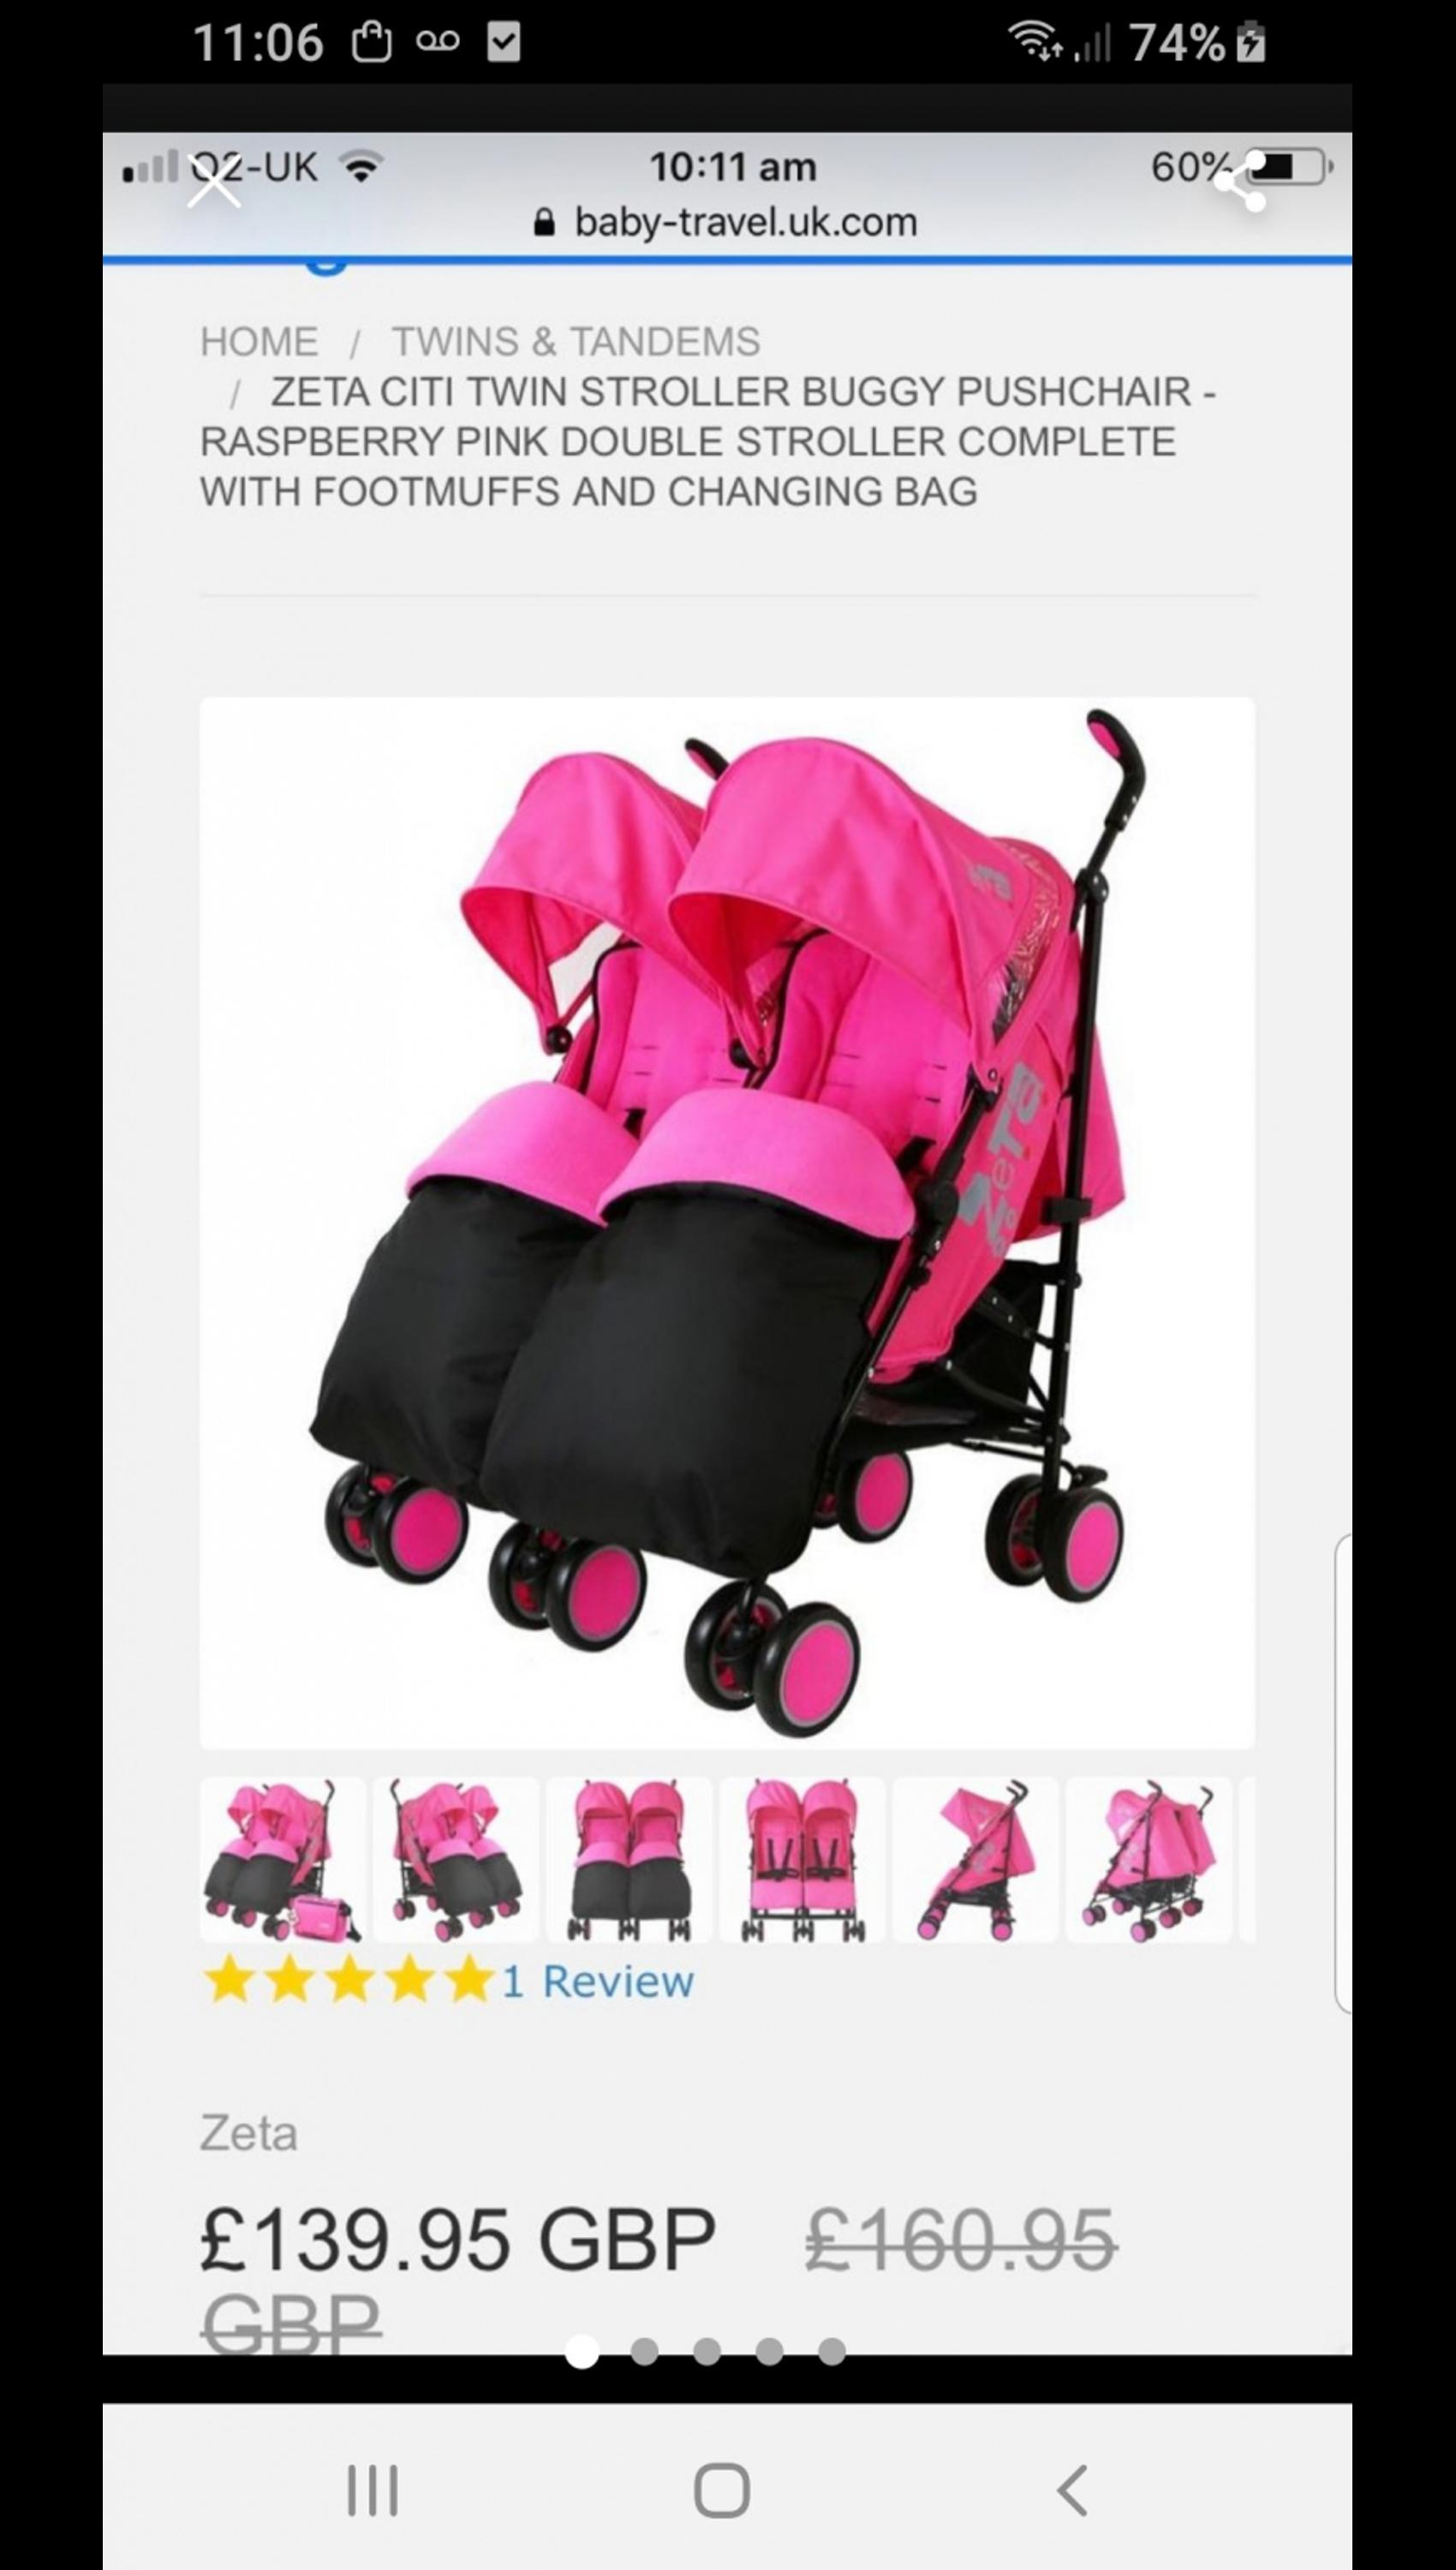 Baby Double Twin Stroller Pink Pushchair Raincover Changing Bag Footmuff Buggy